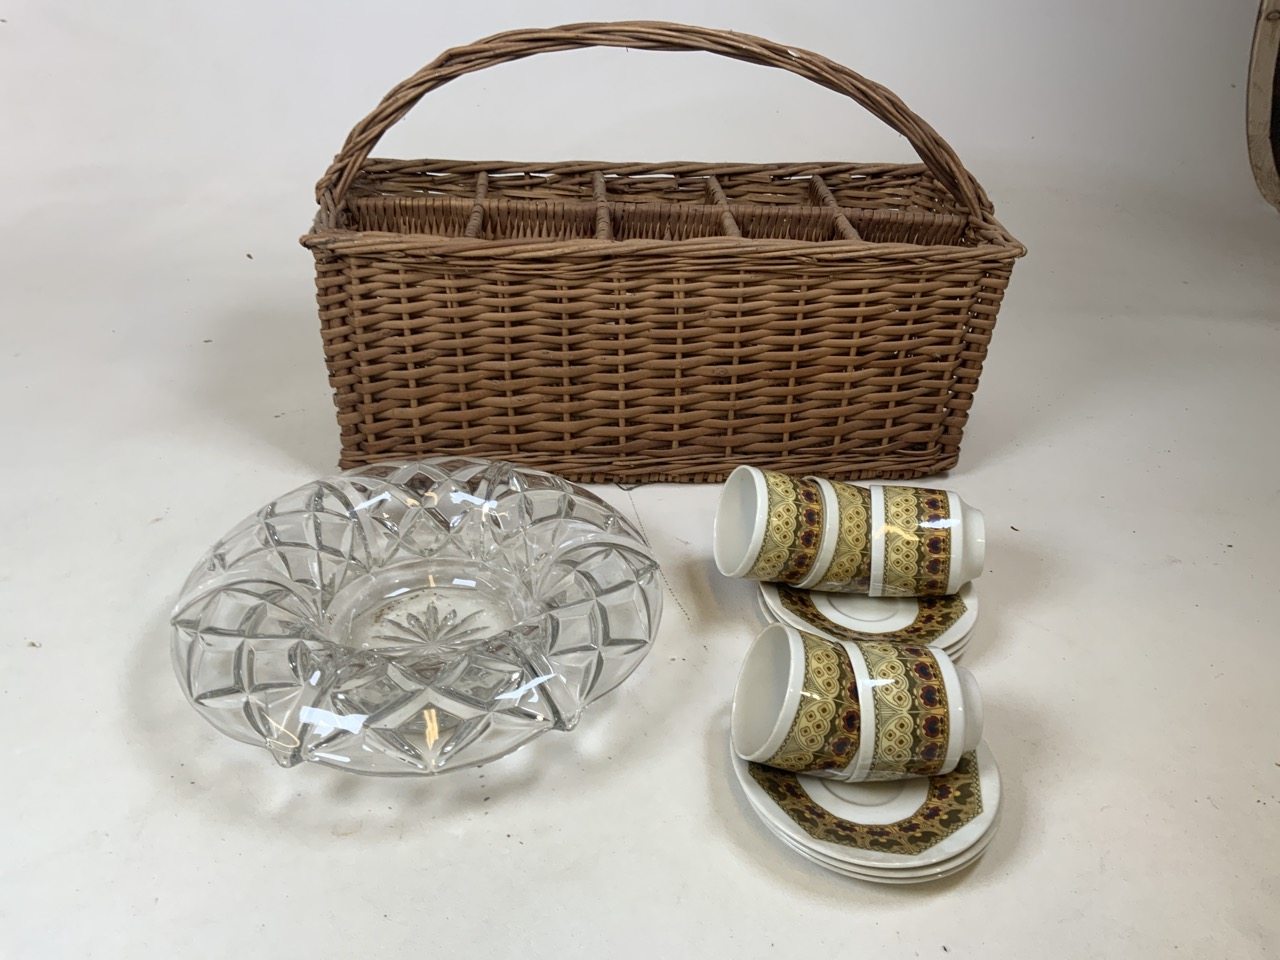 A vintage wicker ten bottle carrier together with Royal Doulton Parquet design tea cups and